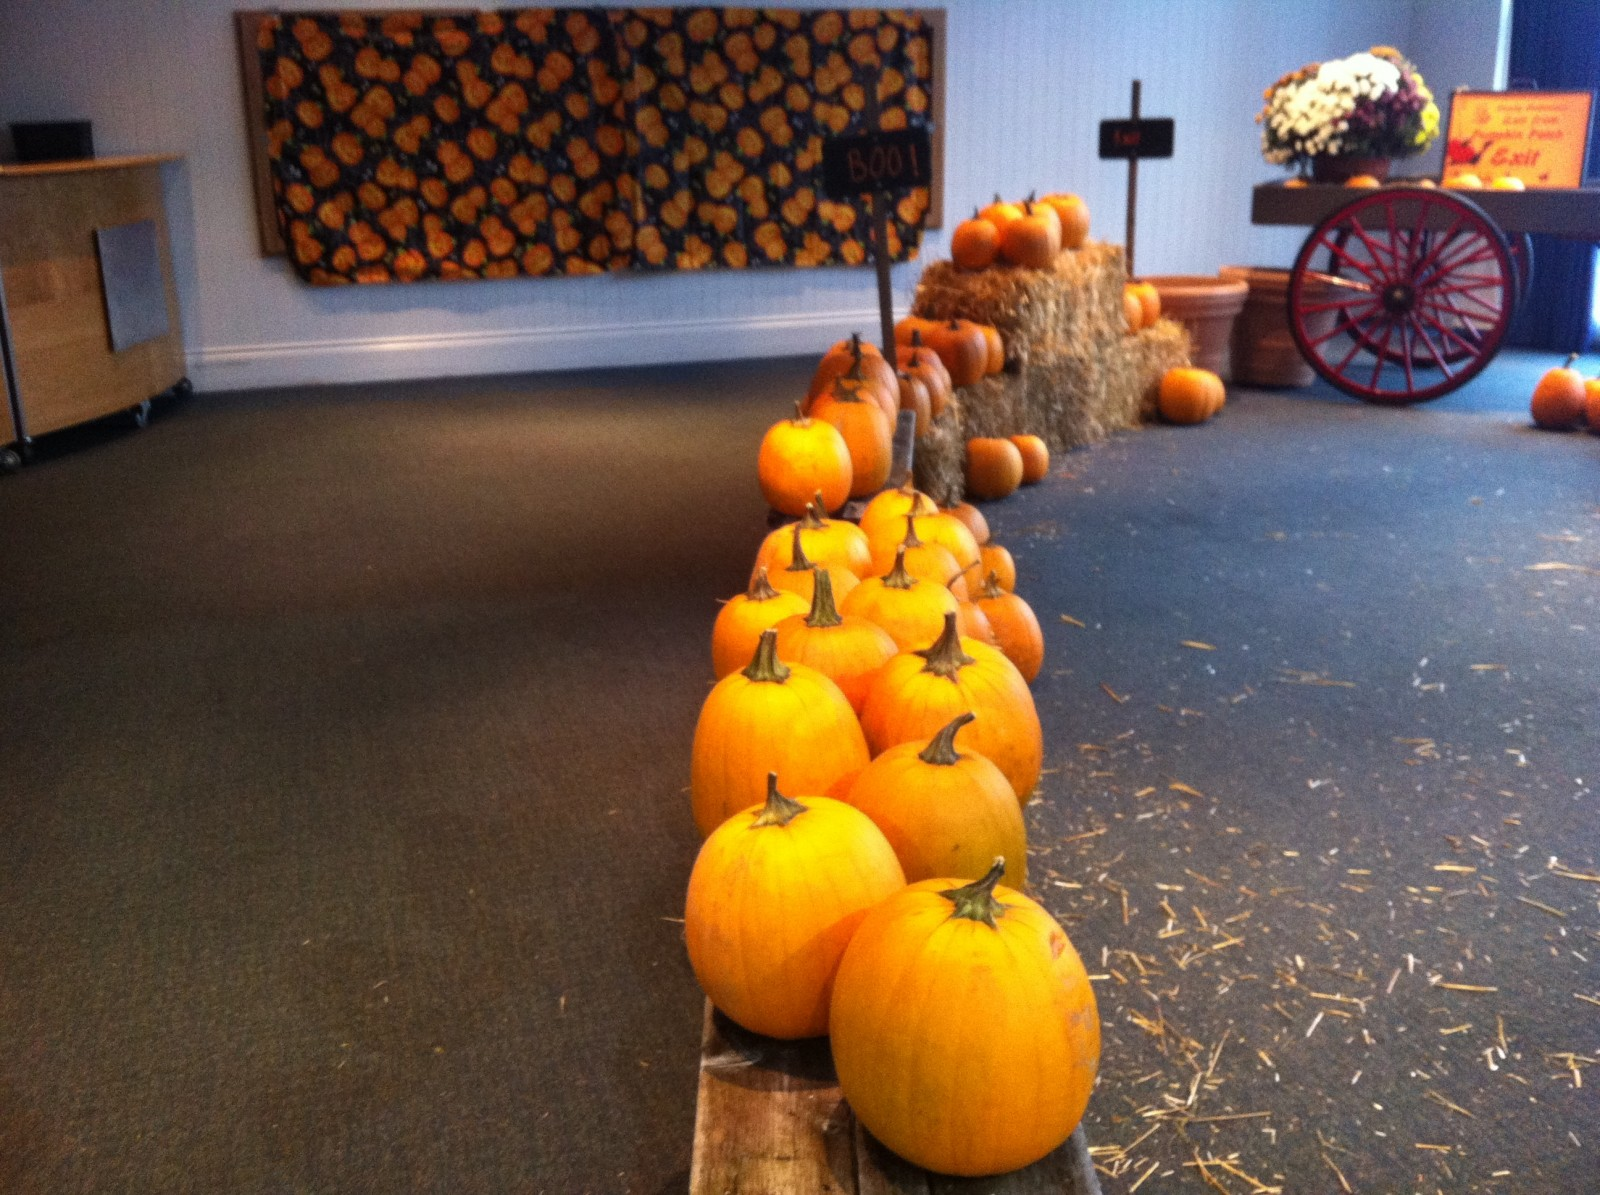 Families spend rainy Saturday at indoor pumpkin patch